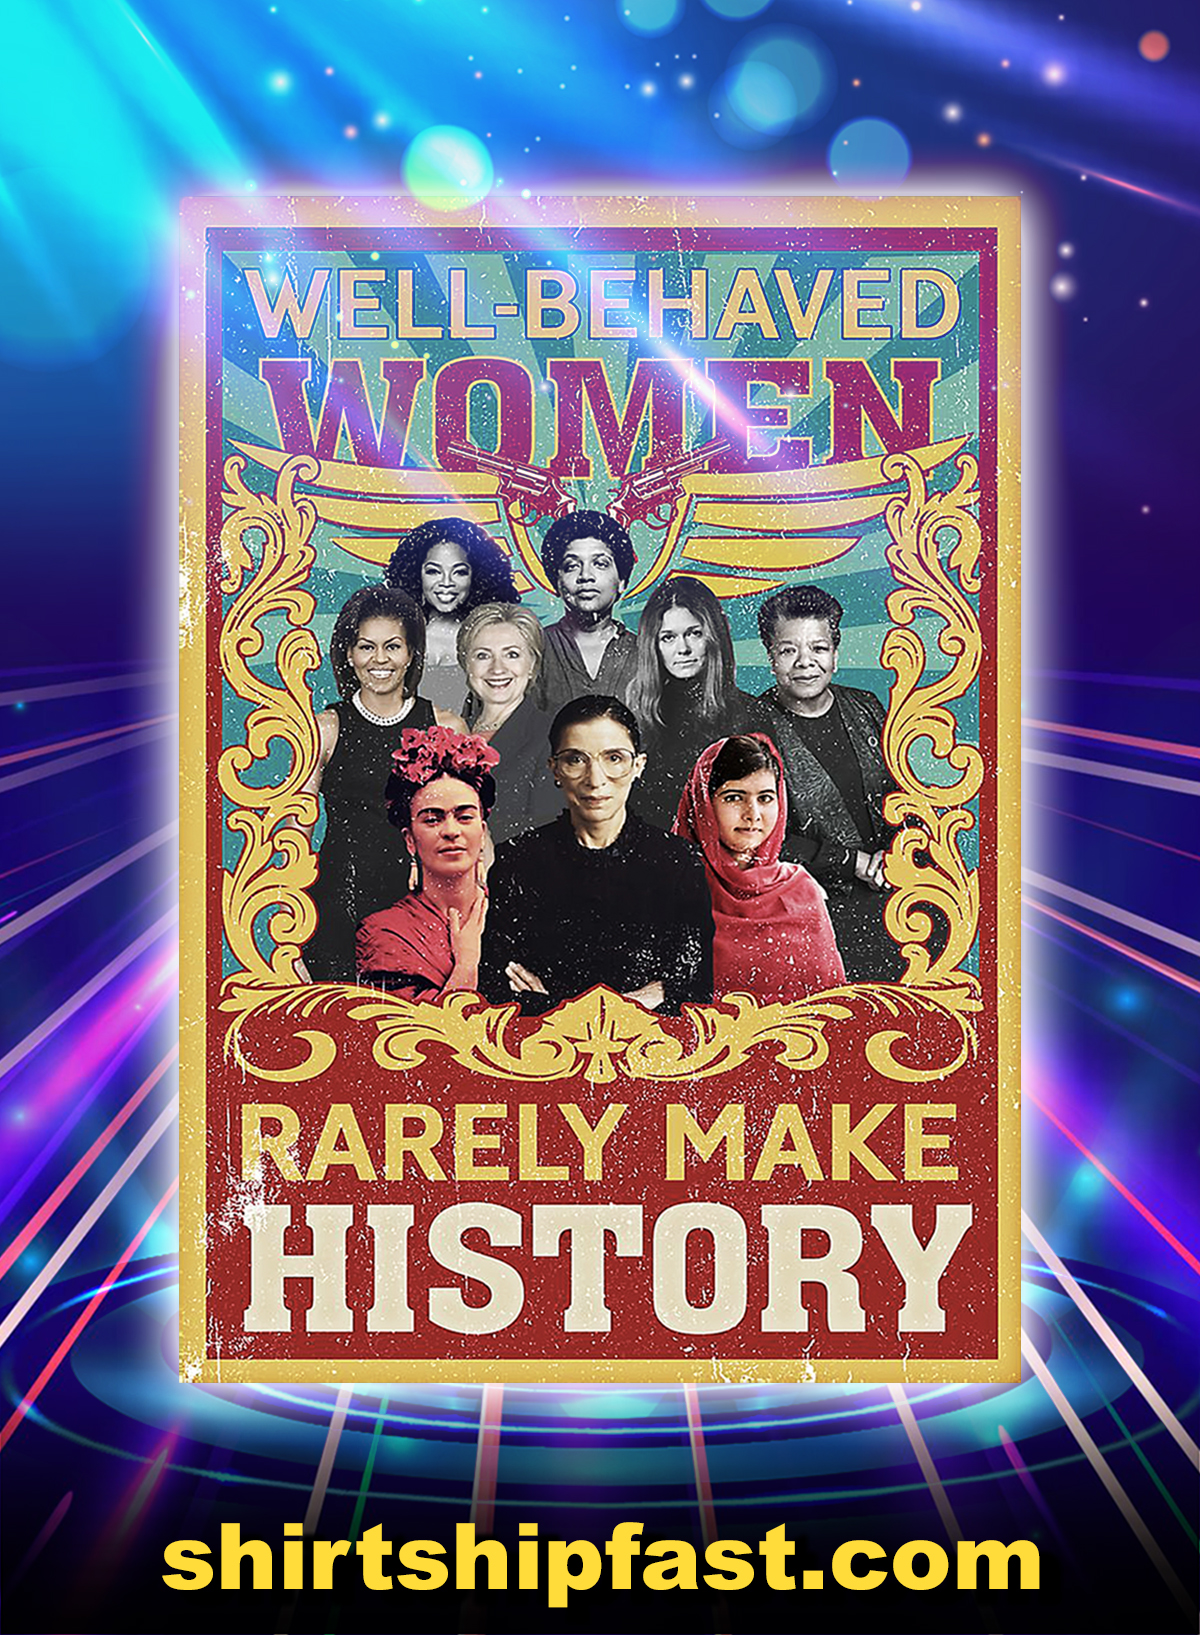 Well-behaved women rarely make history poster - A1